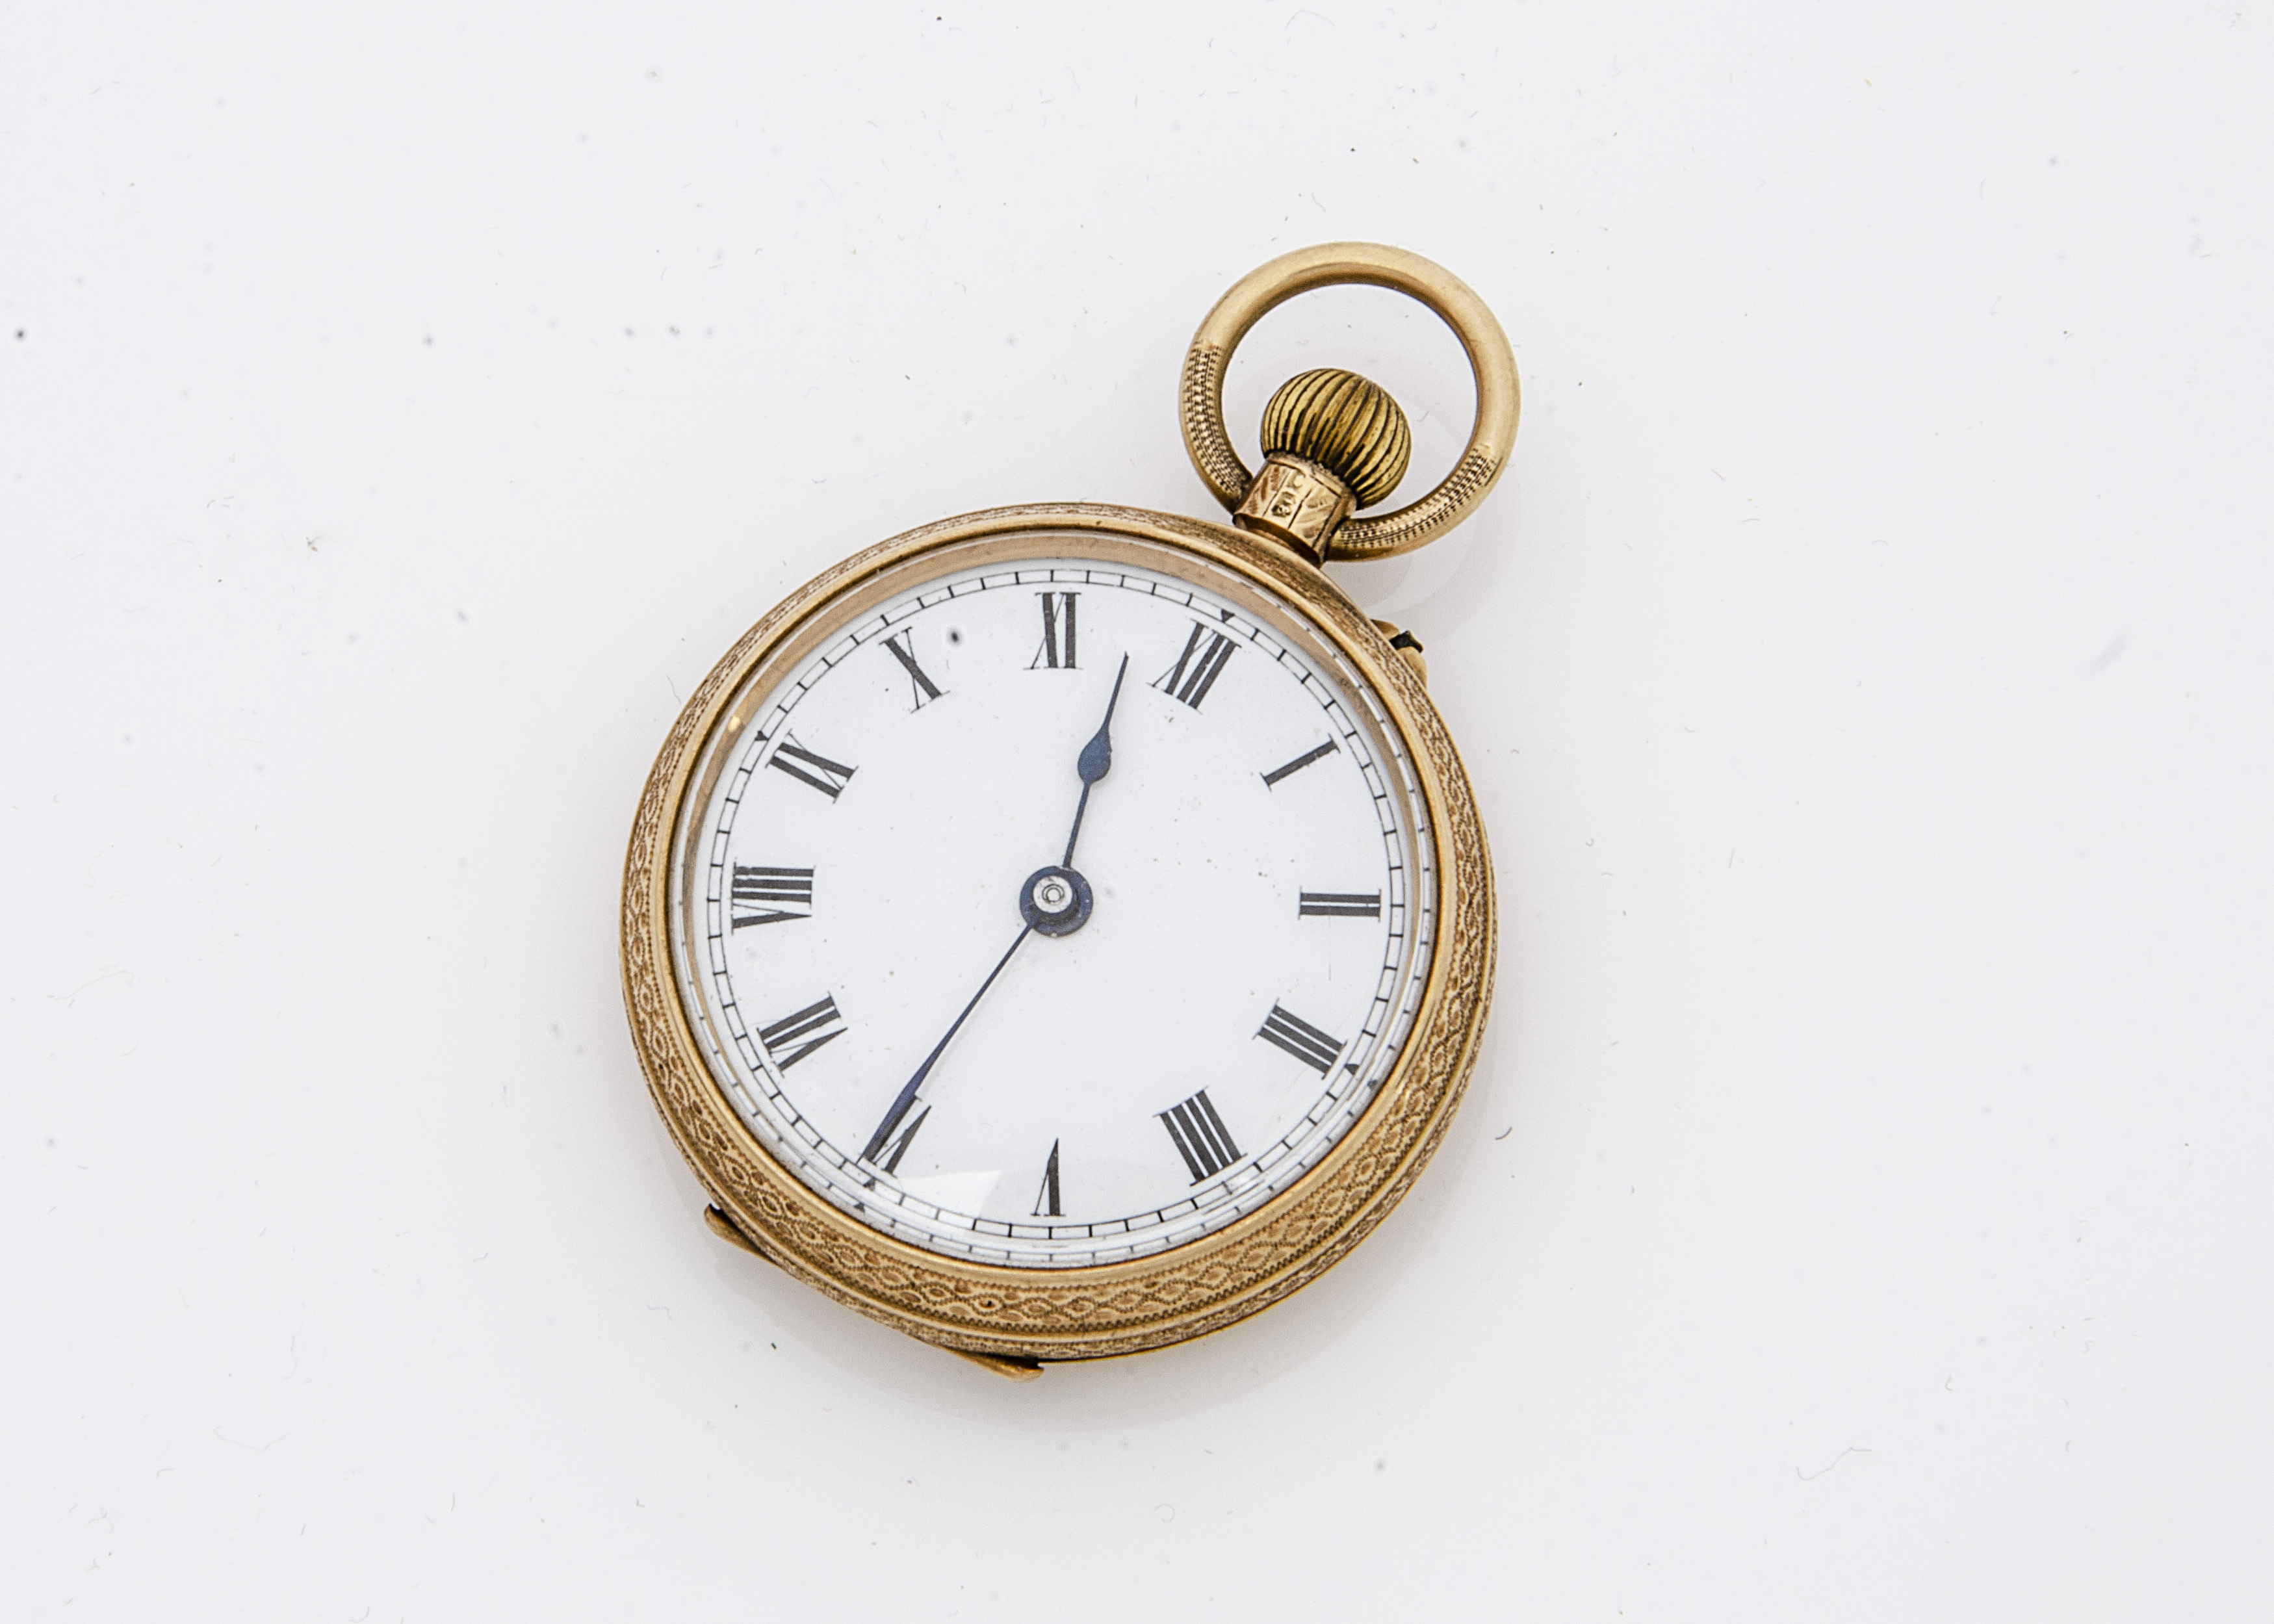 An Edwardian 18ct gold open faced pocket watch, 37mm, appears to run, 48.7g, hallmarked to rear